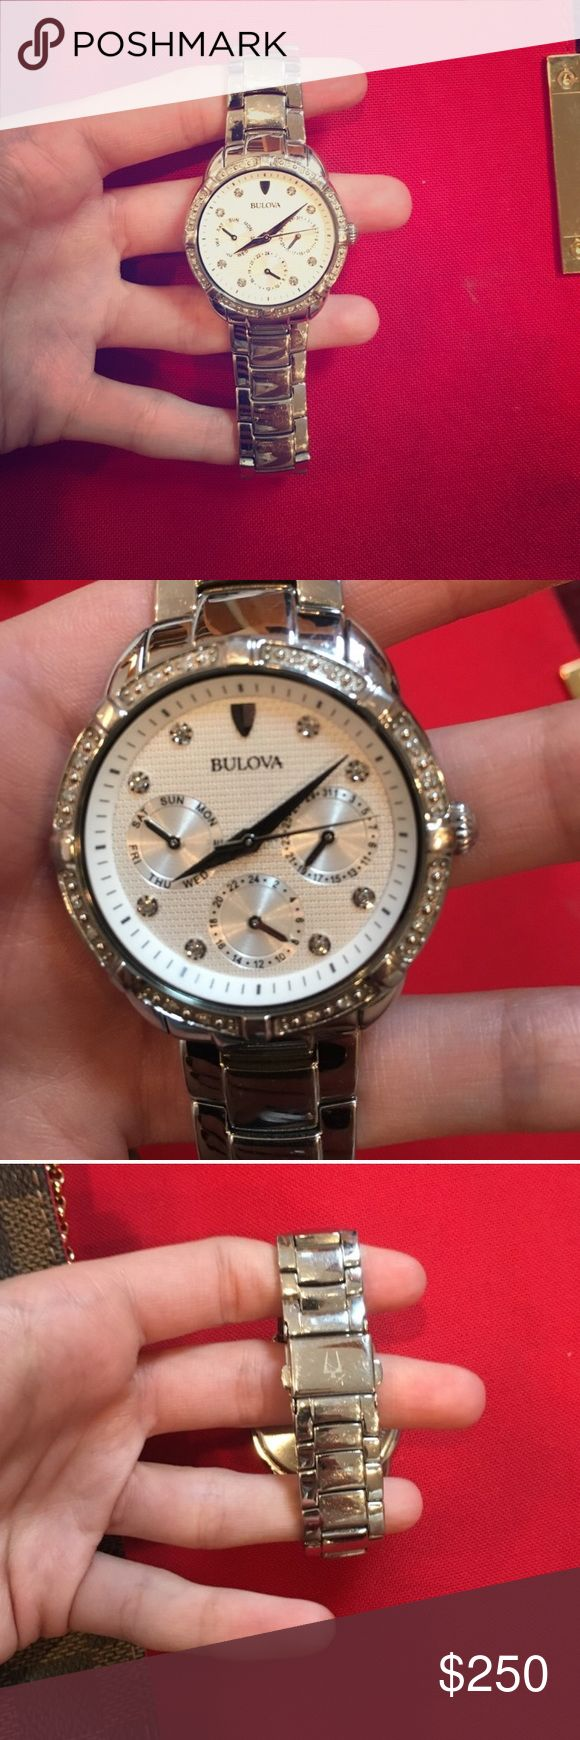 Women's Bulova watch Gently used women's Bulova watch. Purchased at Kay Jewelers. Originally $650. Bulova Accessories Watches